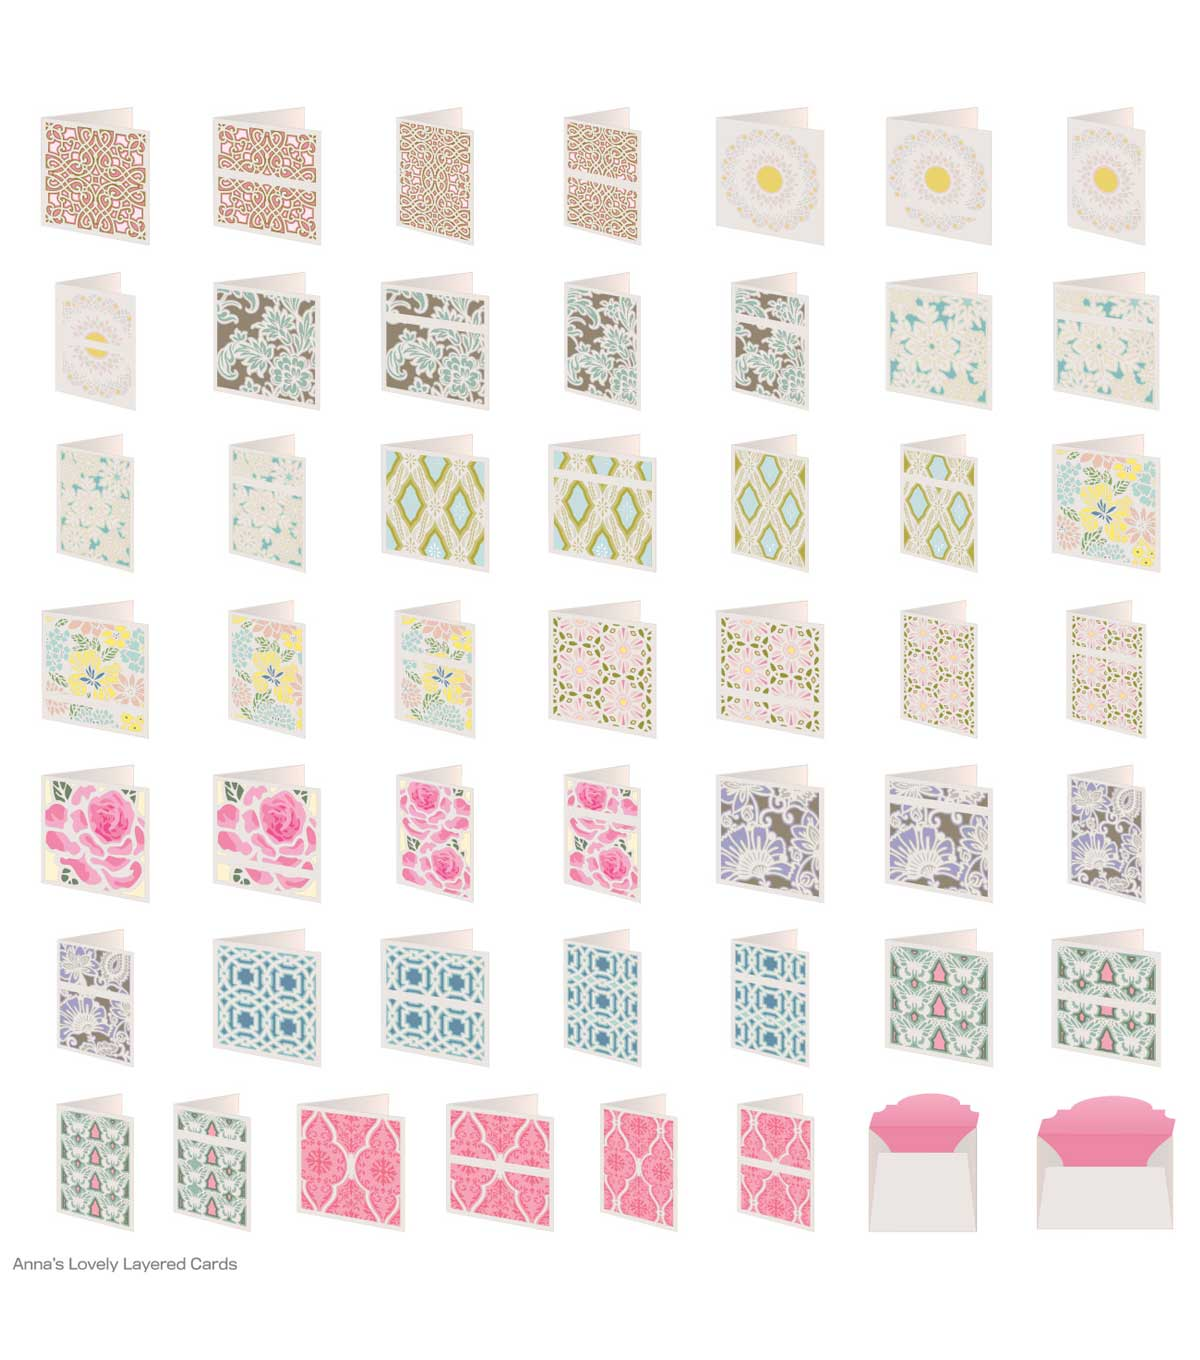 Cricut Cartridge Anna Griffin Lovely Layered Cards